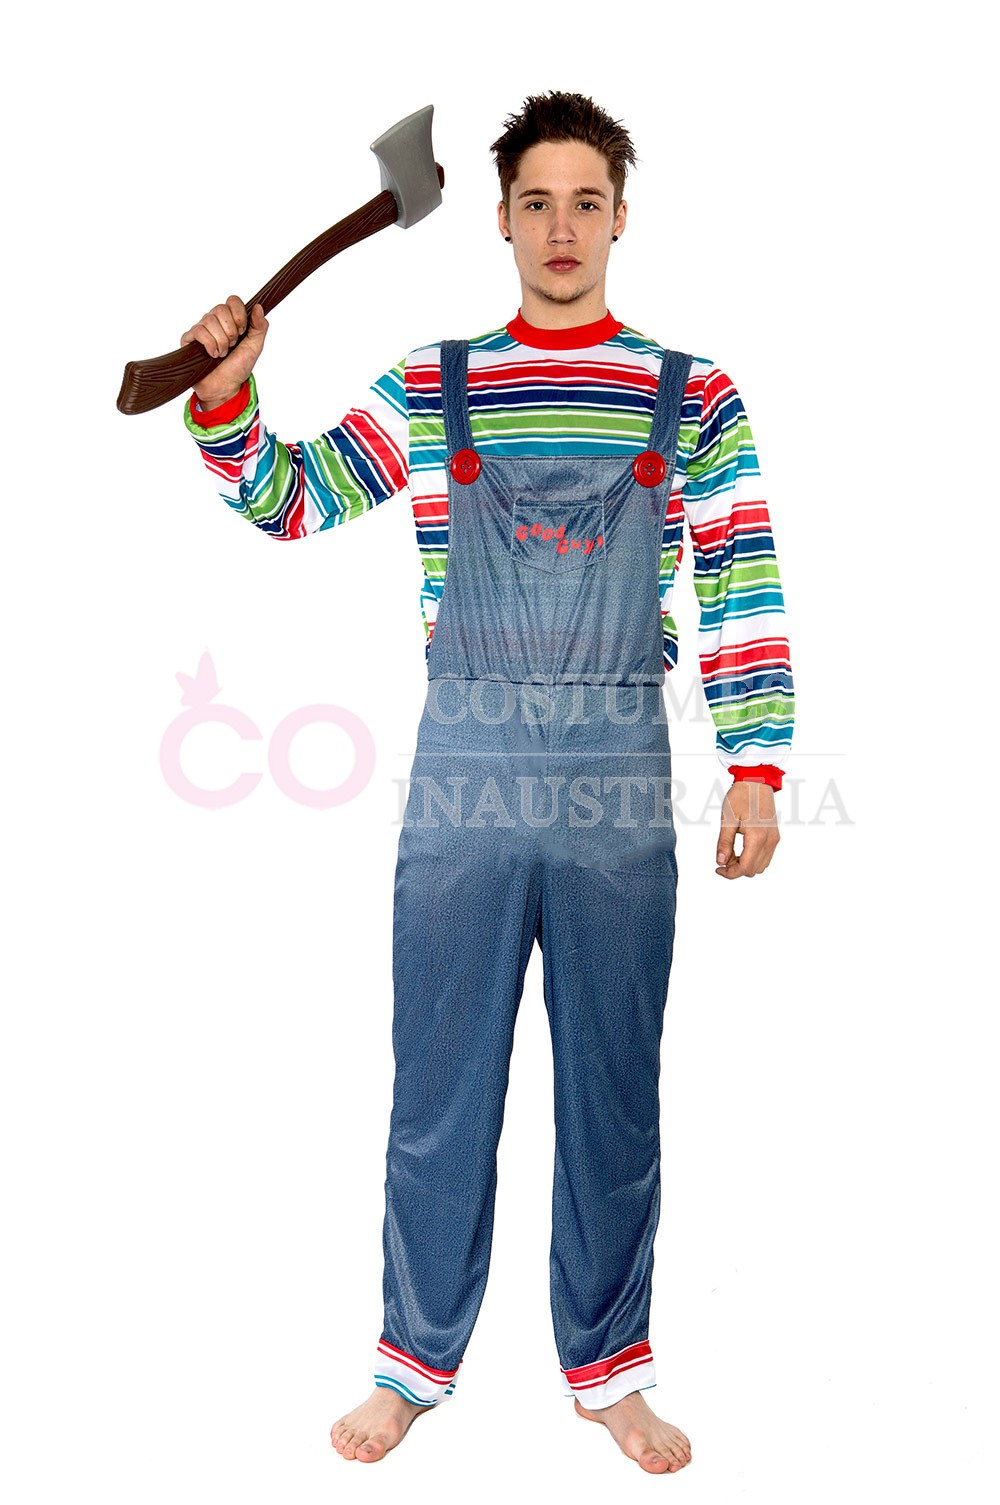 chucky doll costume - photo #39